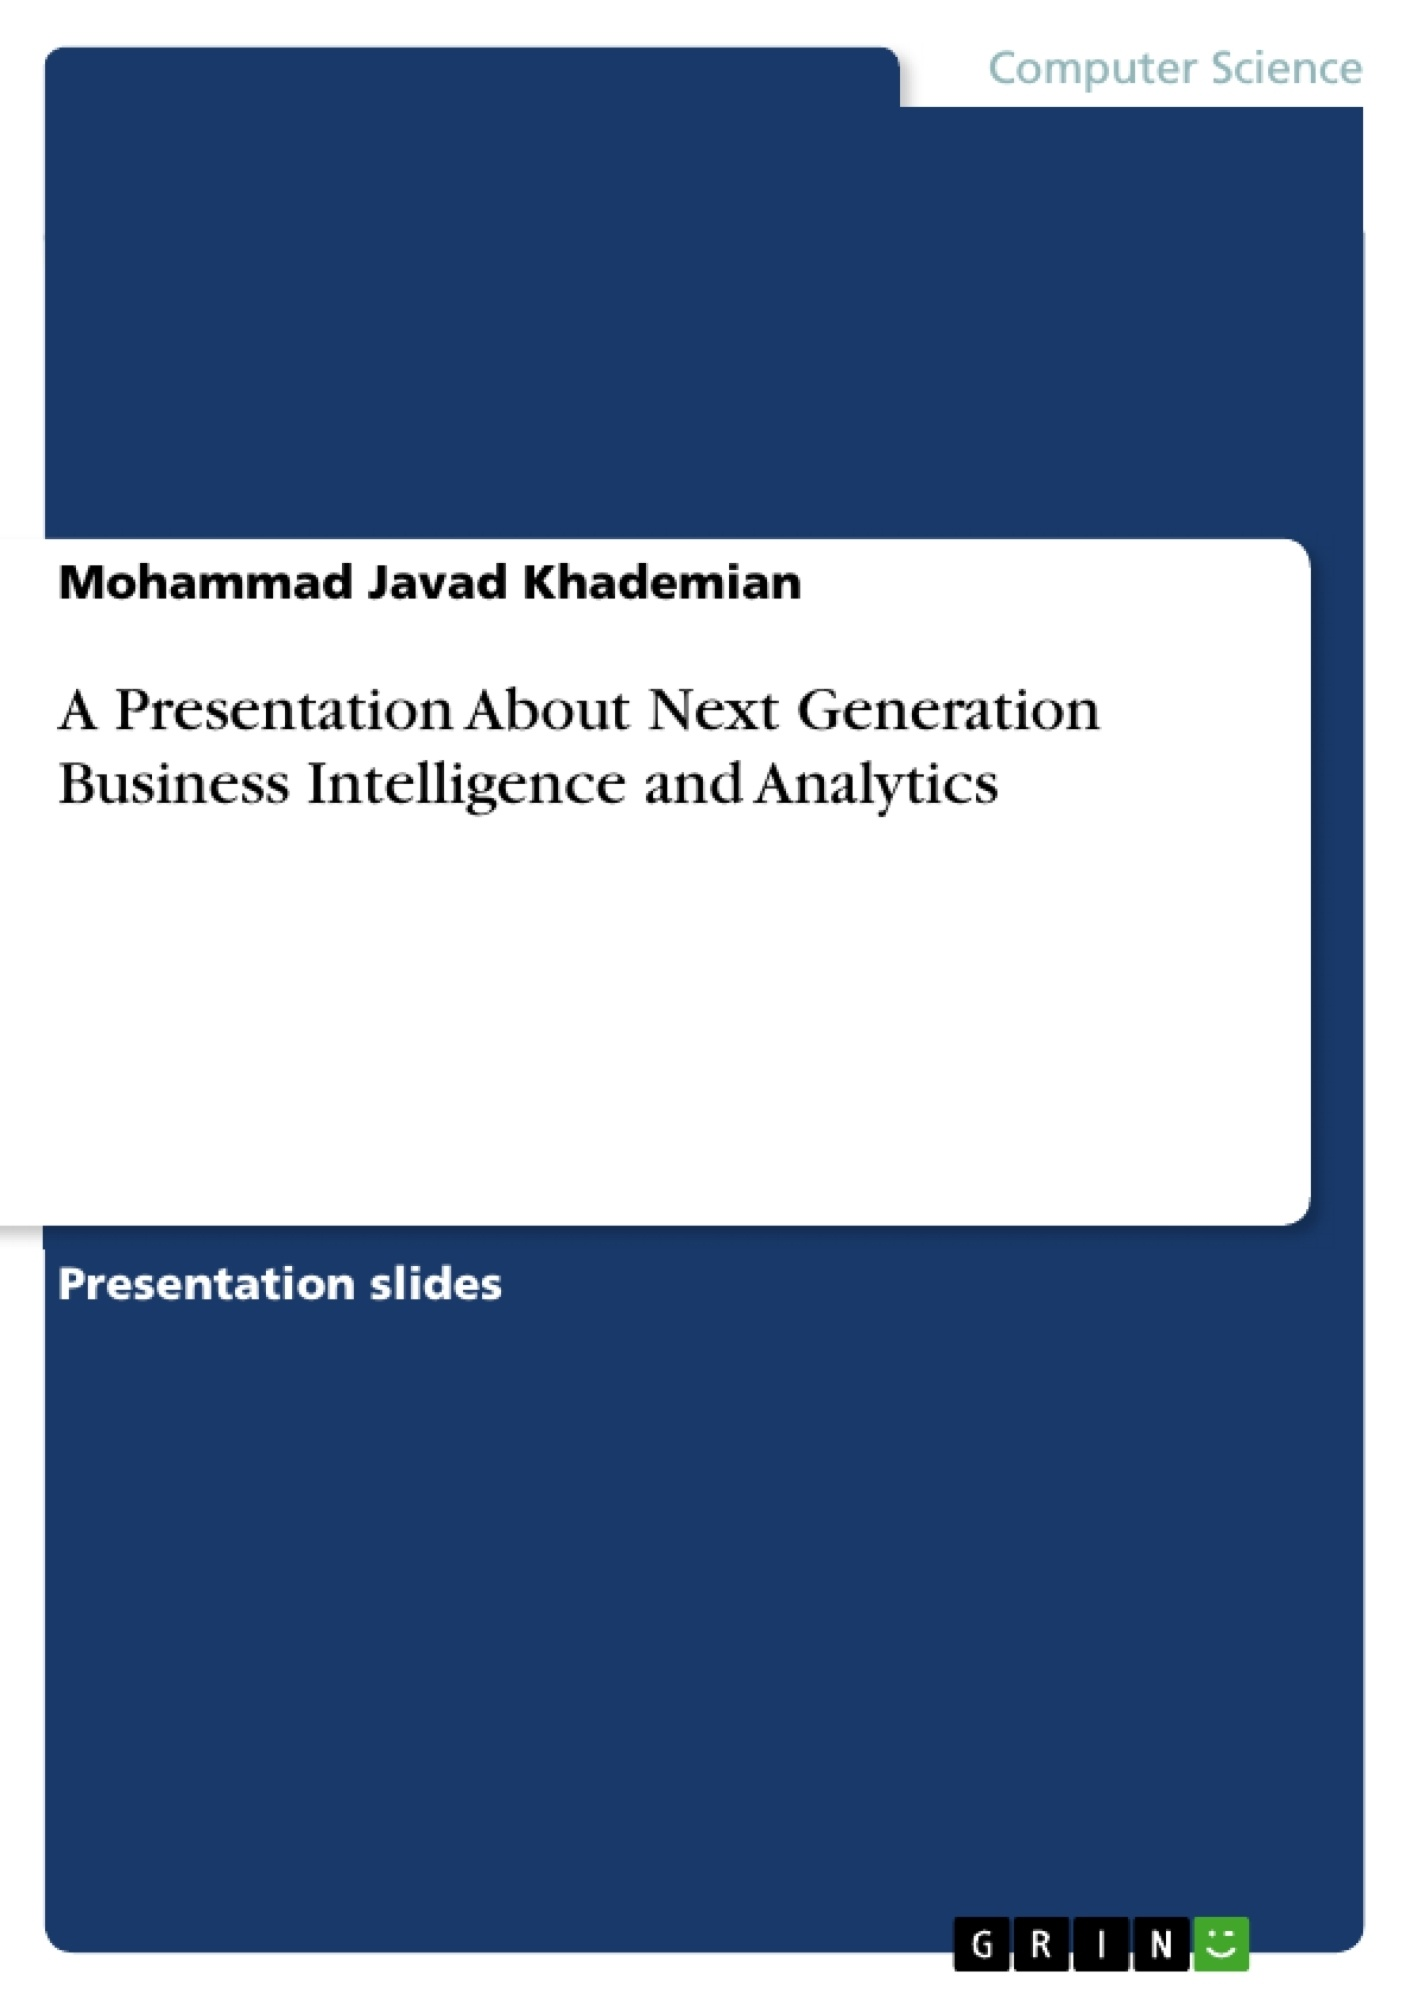 Title: A Presentation About Next Generation Business Intelligence and Analytics